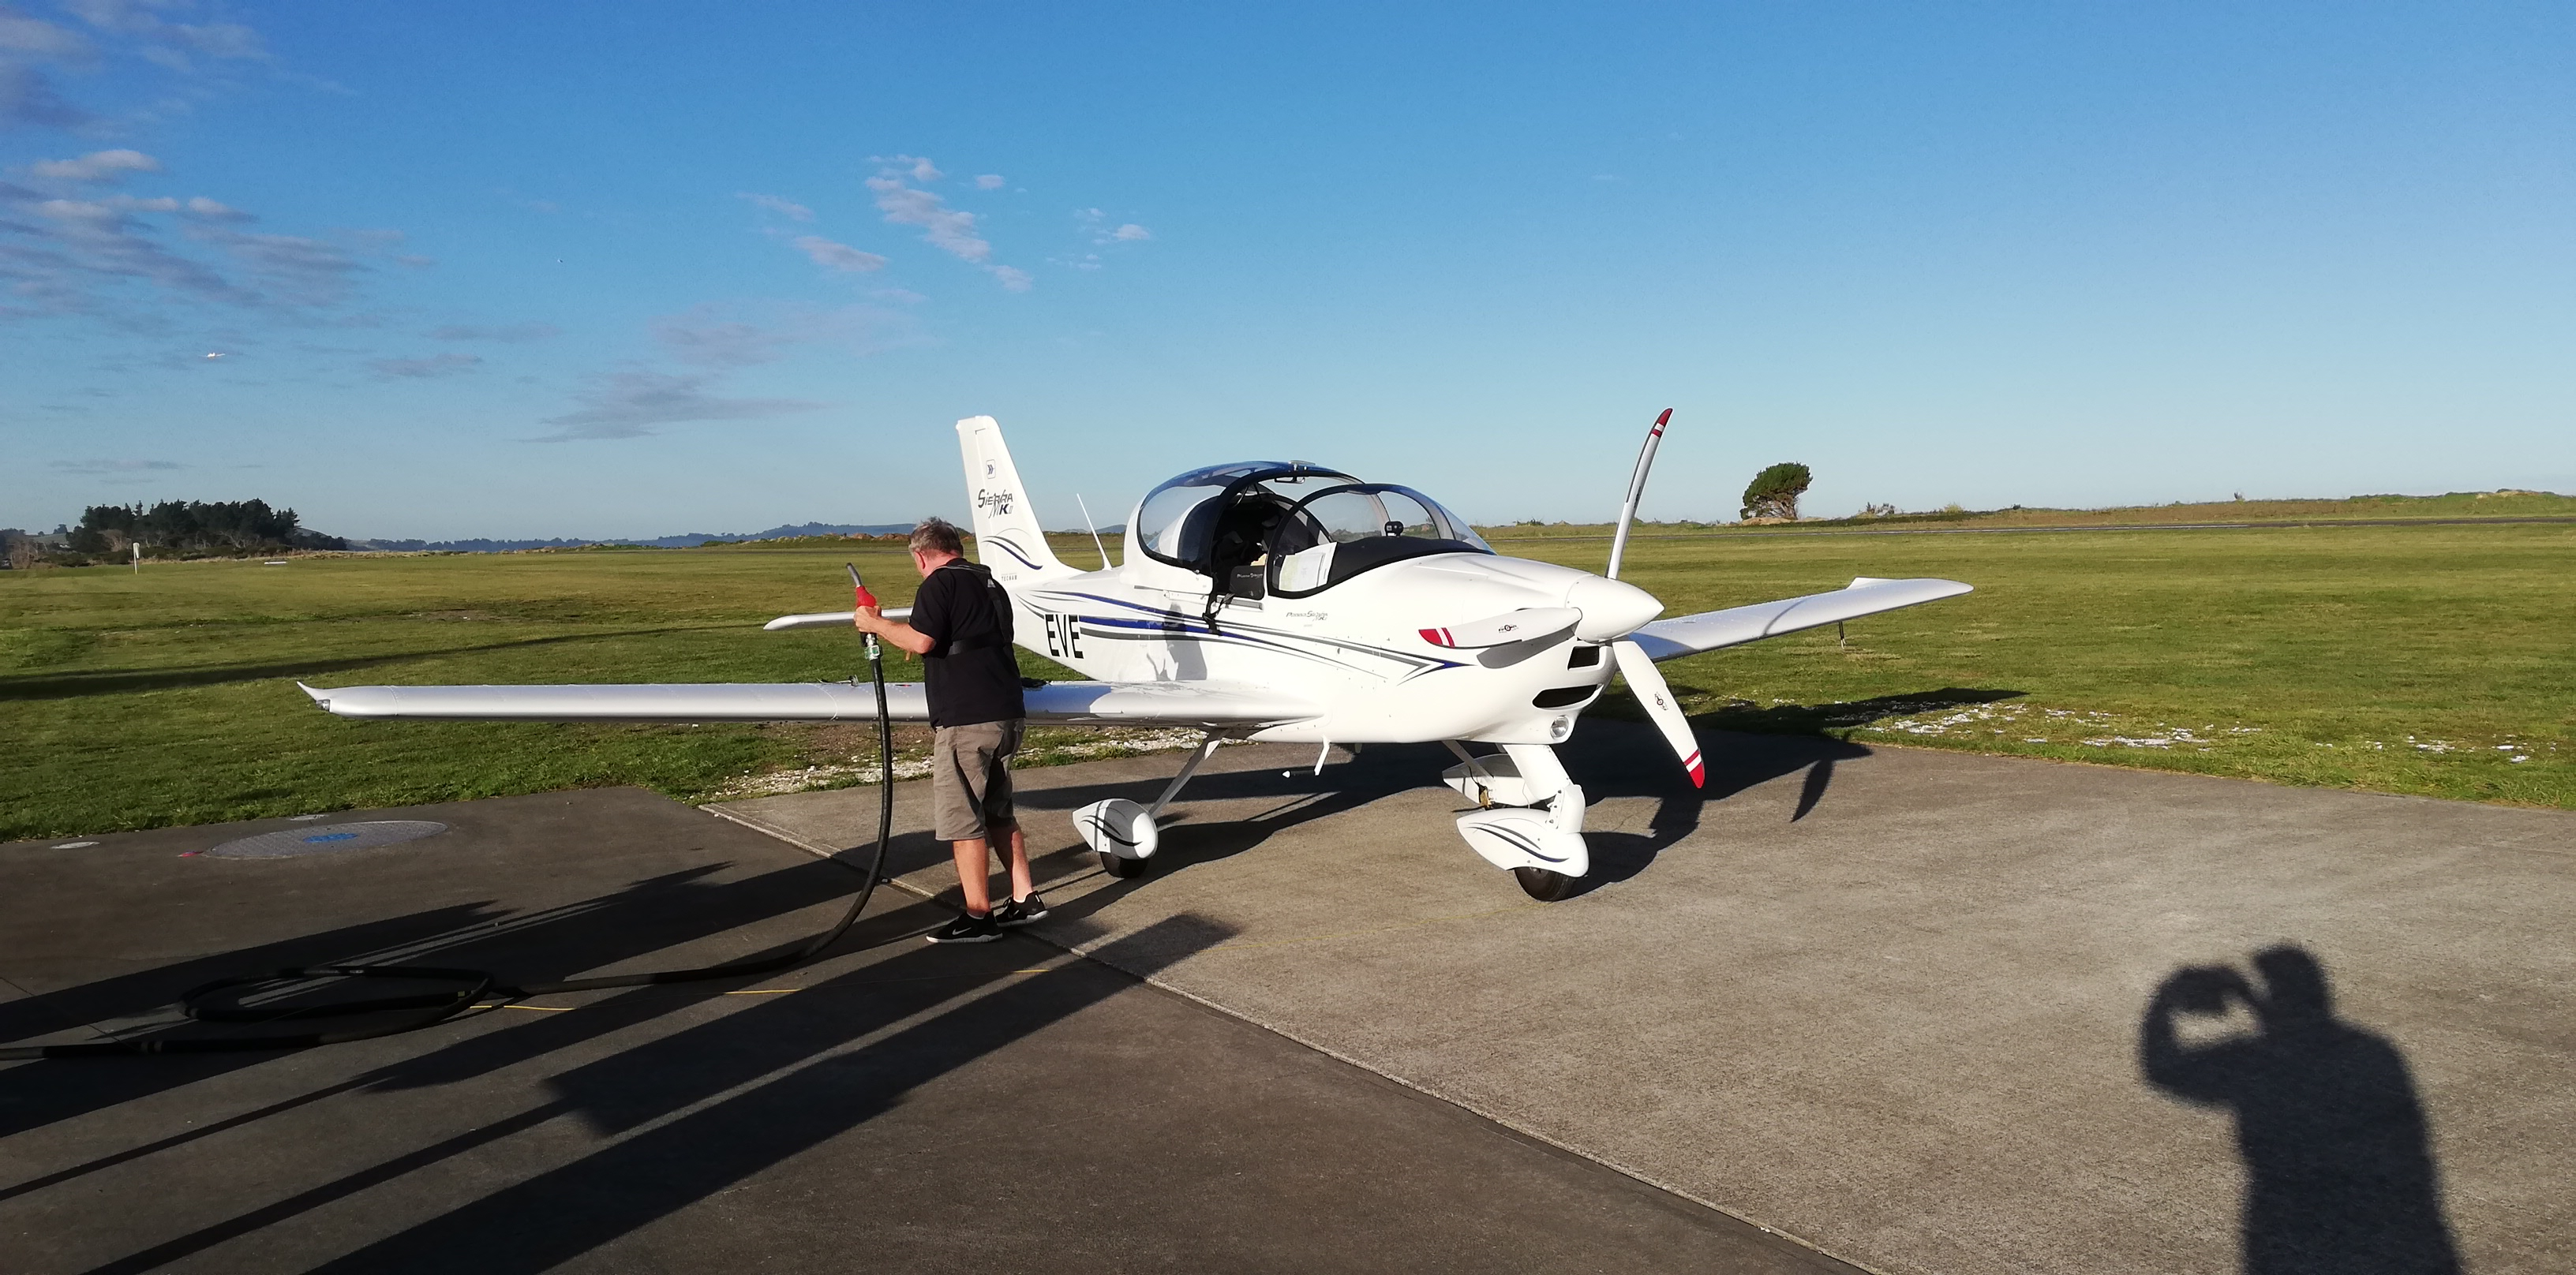 Refuelling at Kaikoura.